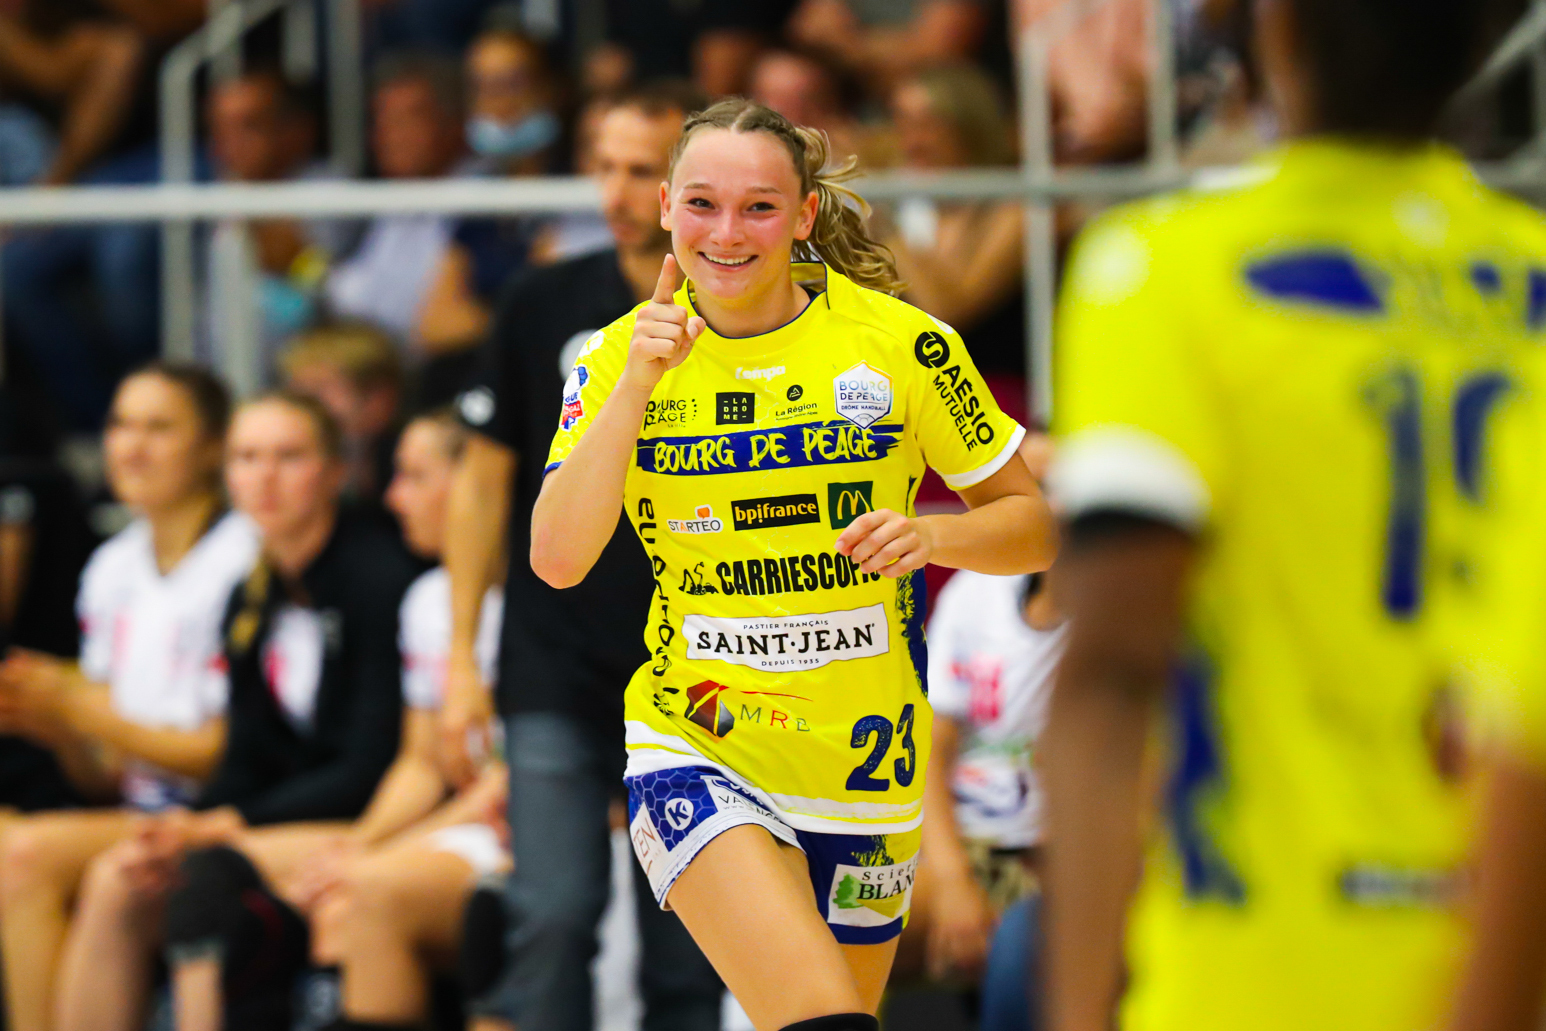 Lena GRANDVEAU of Bourg de Peage during the Ligue Butaguaz Energie match between Bourg de Peage and Brest on September 8, 2021 in Bourg-de-Peage, France. (Photo by Bertrand Delhomme/Icon Sport) -  (France)